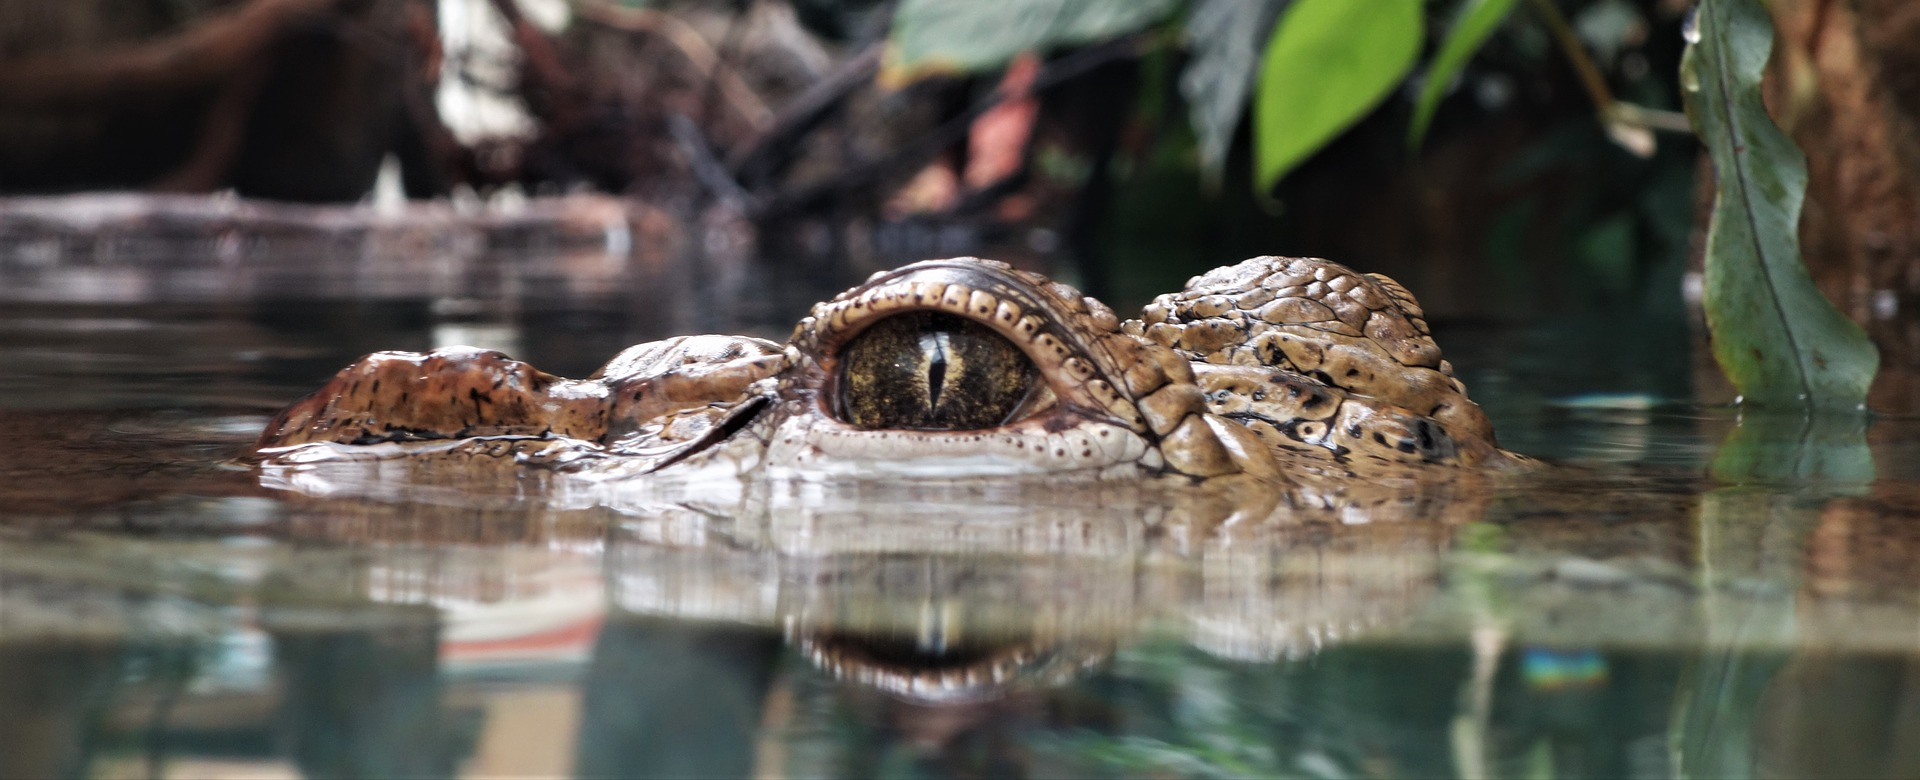 Fun Facts About Crocodiles For Kids The Stuff Of Success